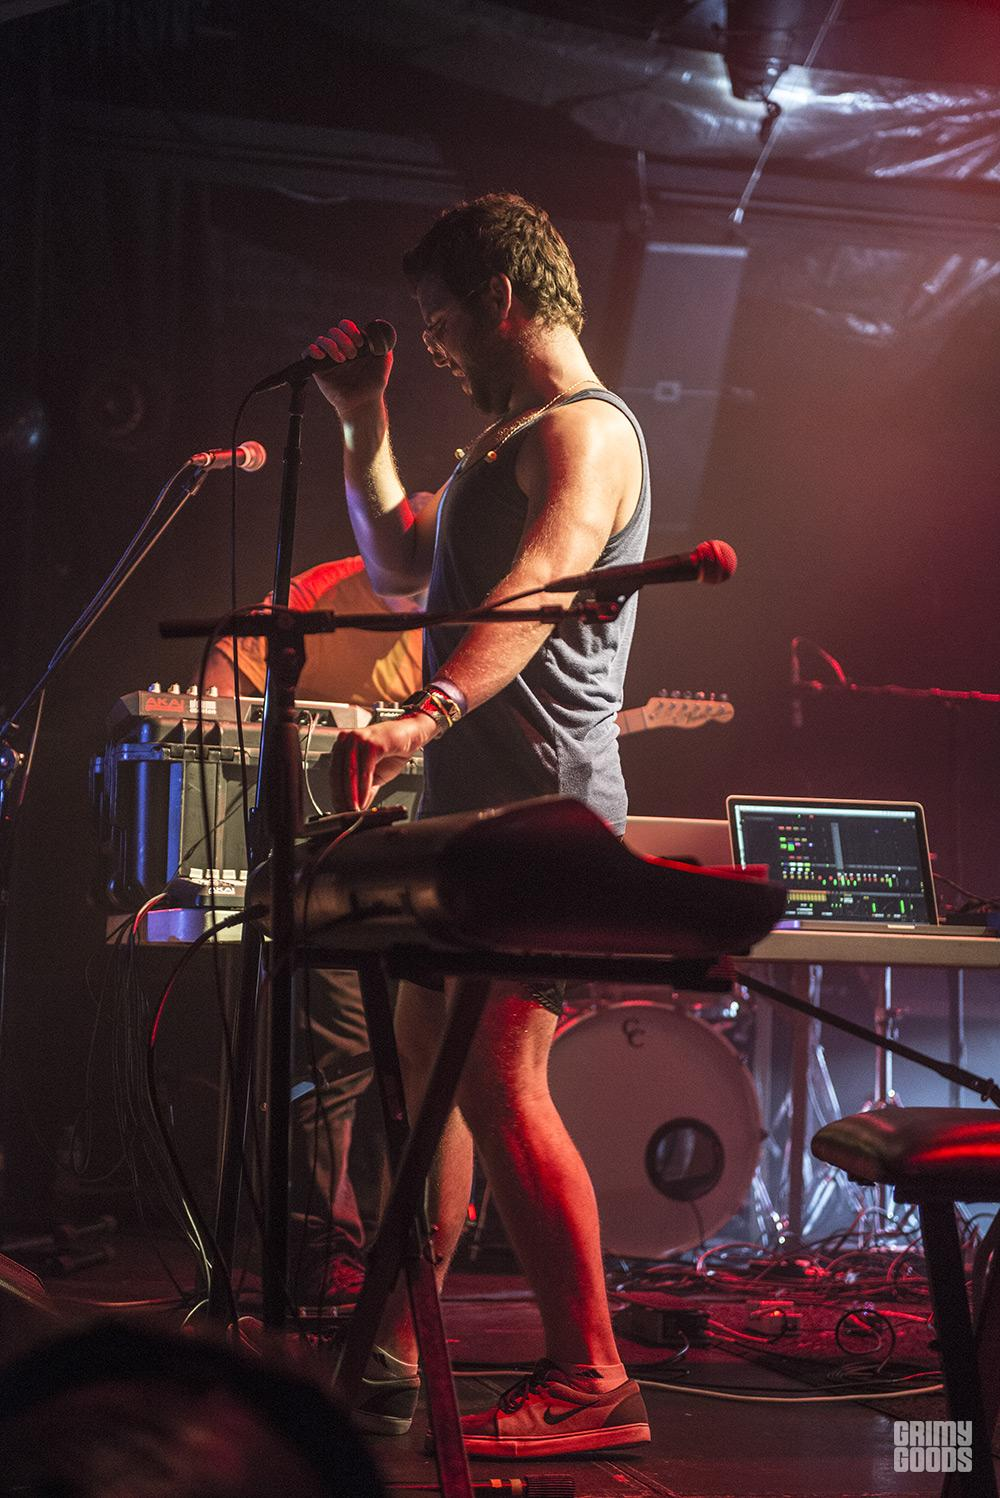 photos baths will anticon